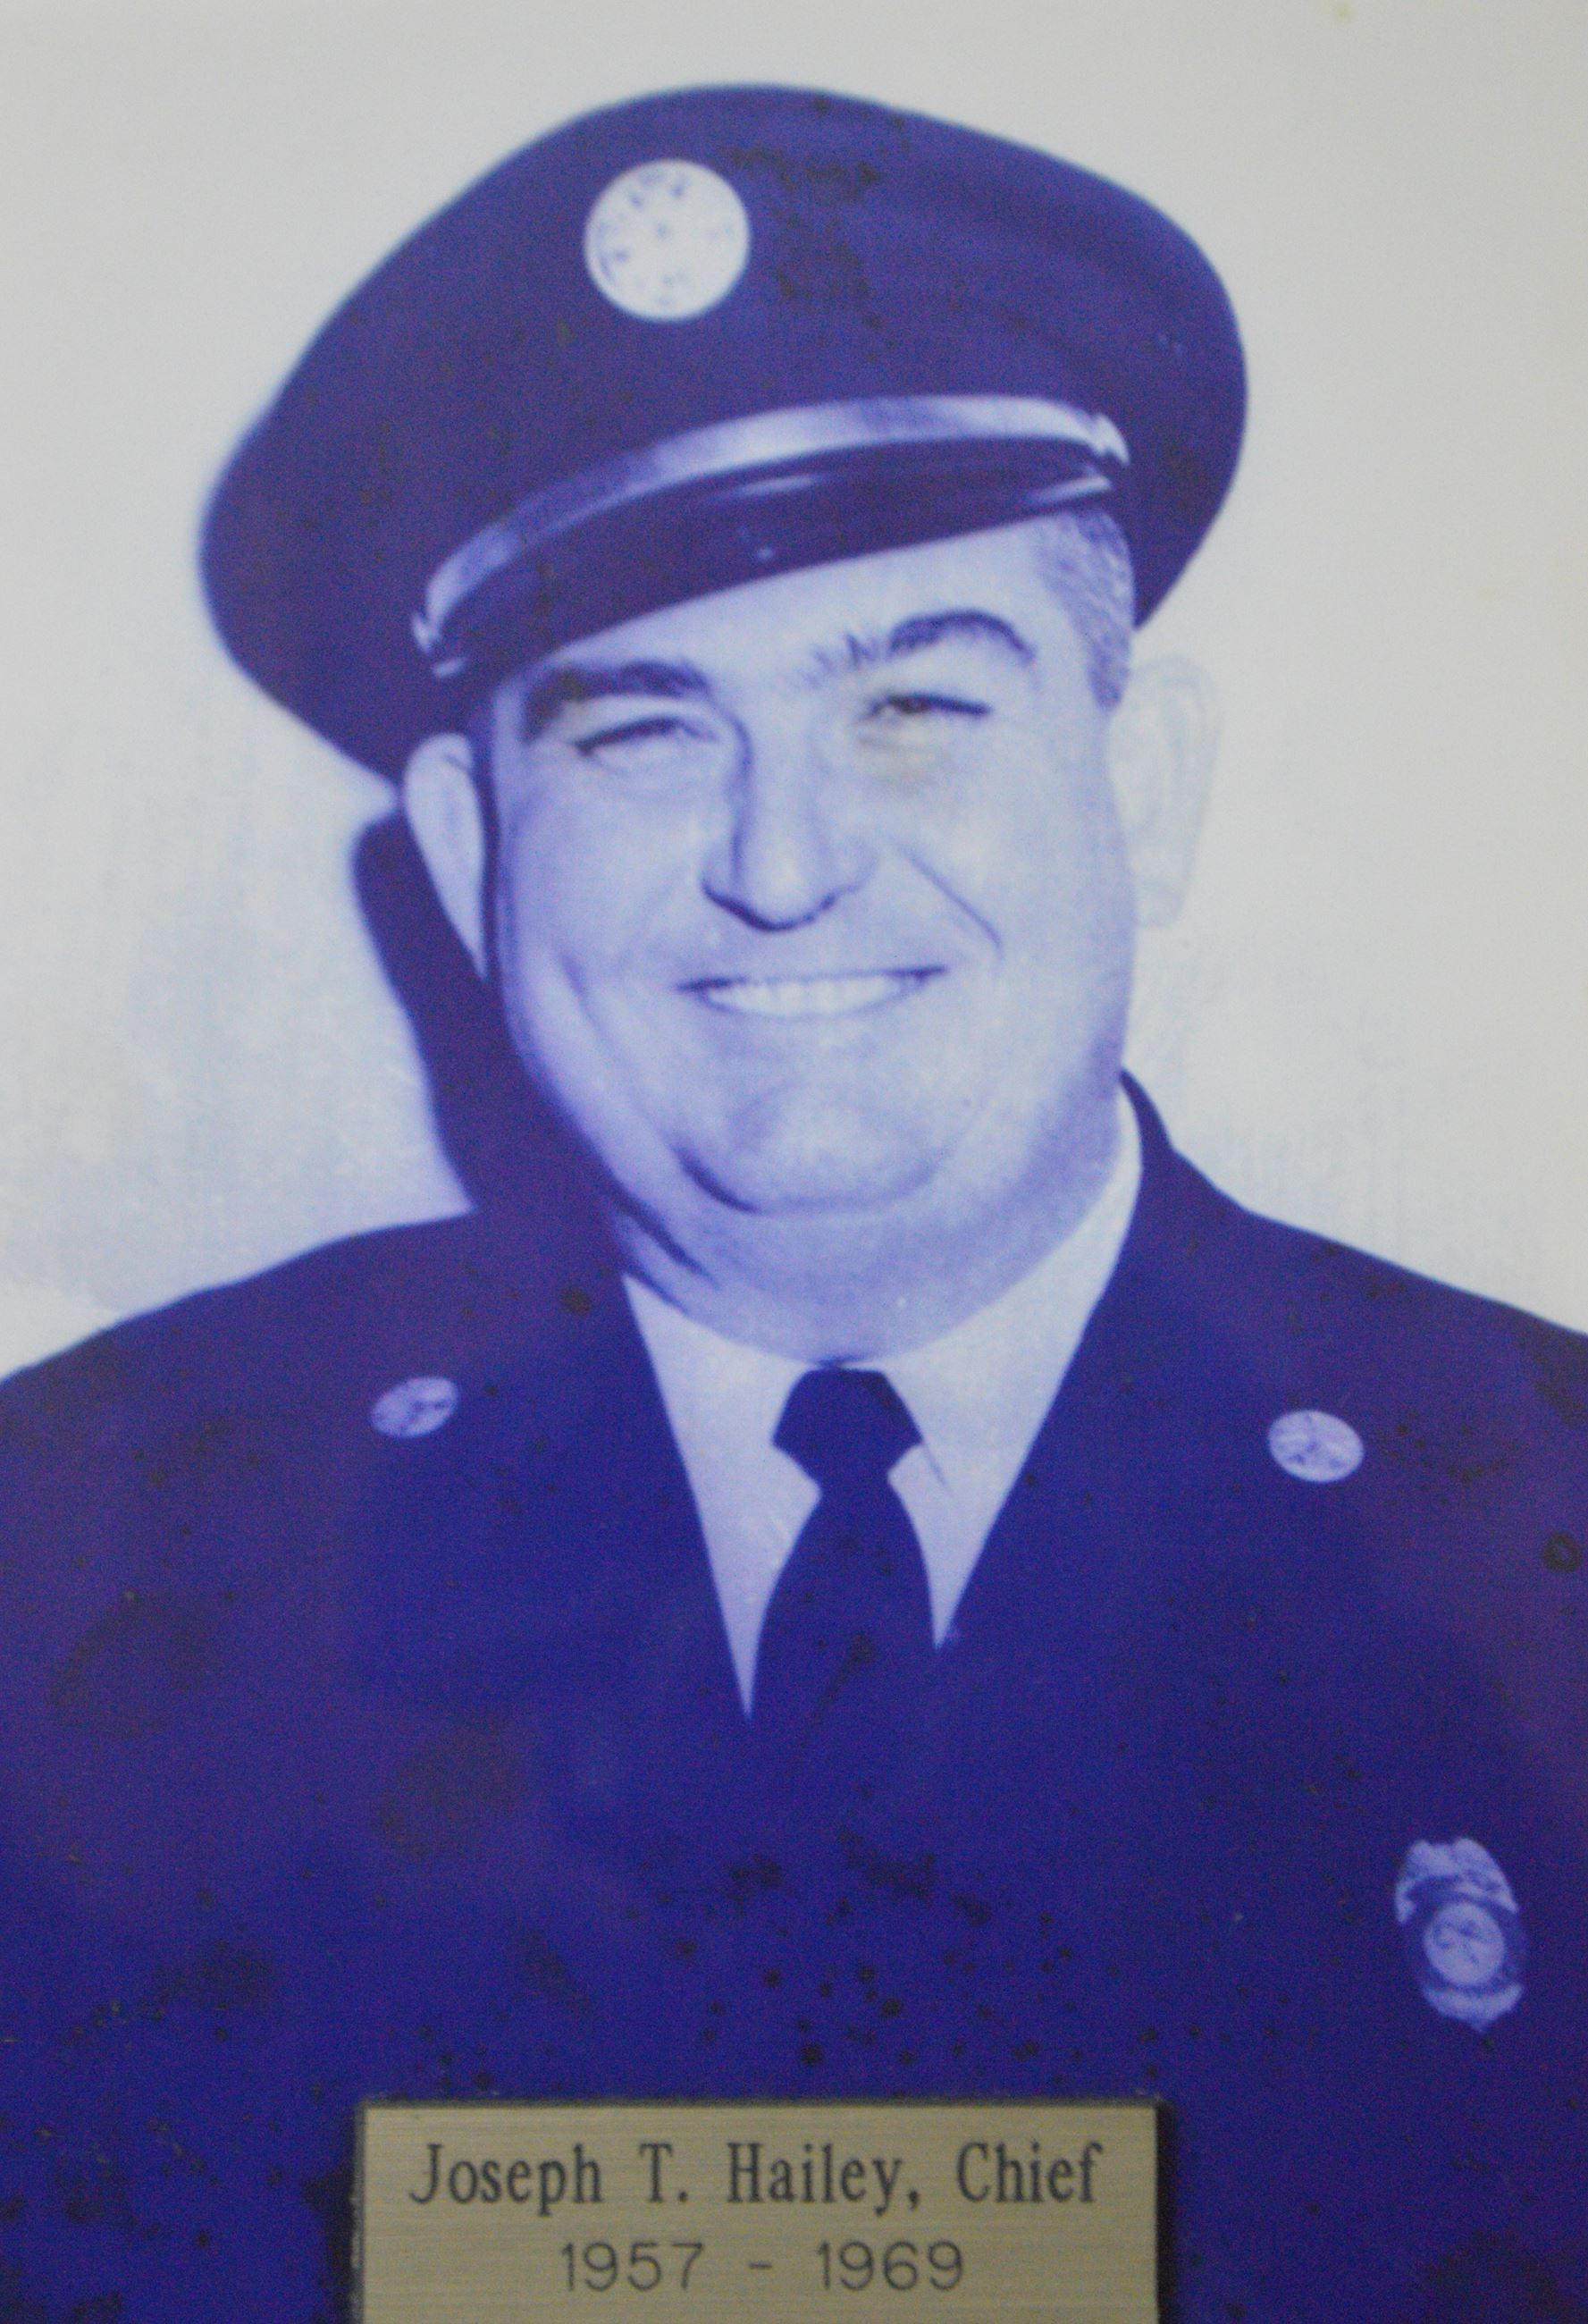 The Late Fire Chief Joseph T. Hailey Served from 1957 - 1969